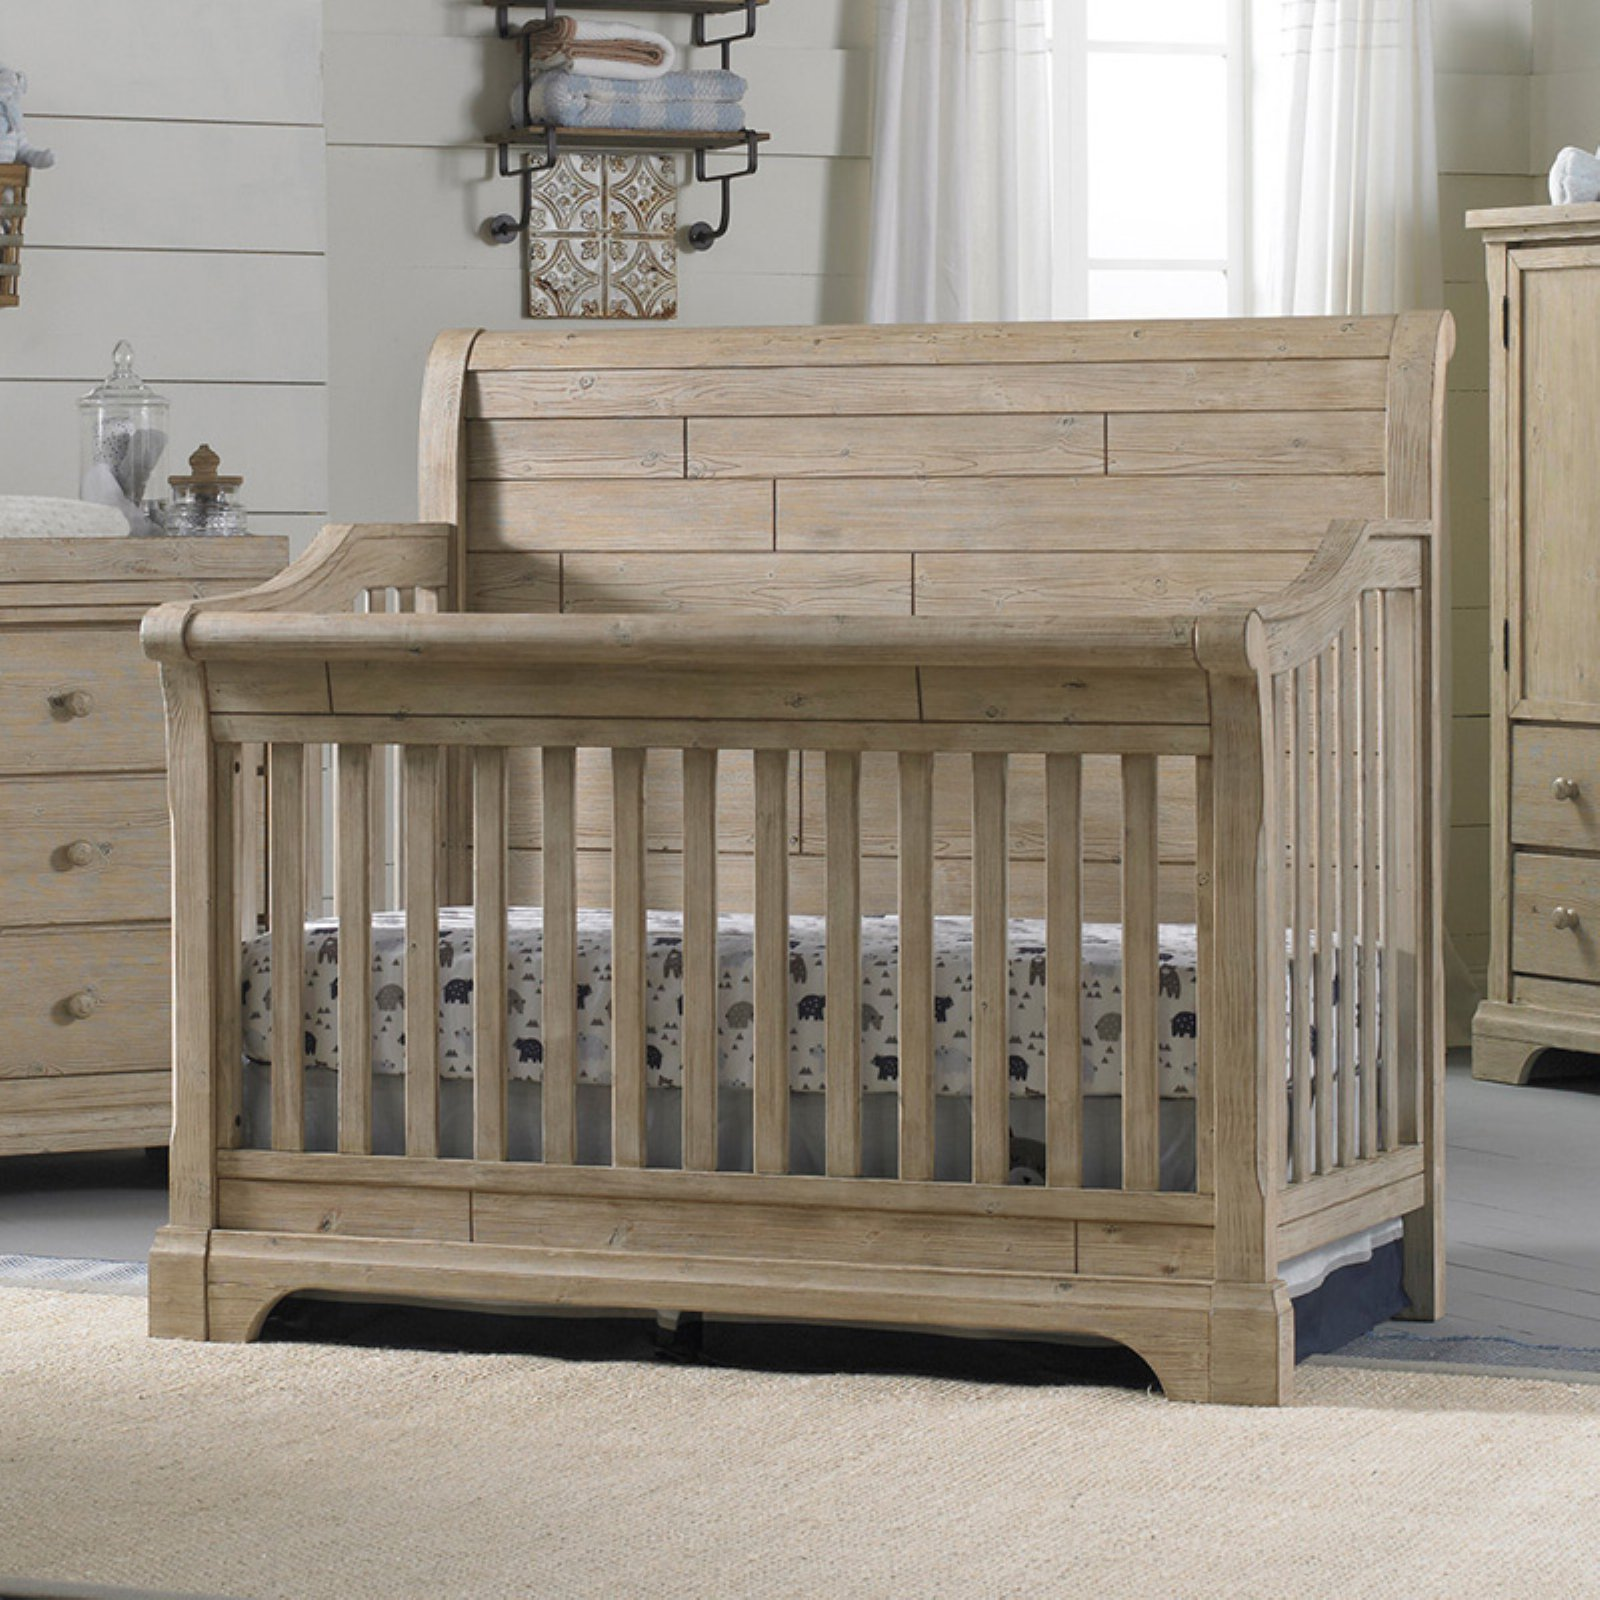 Cosi Bella Delfino 4-in-1 Convertible Crib